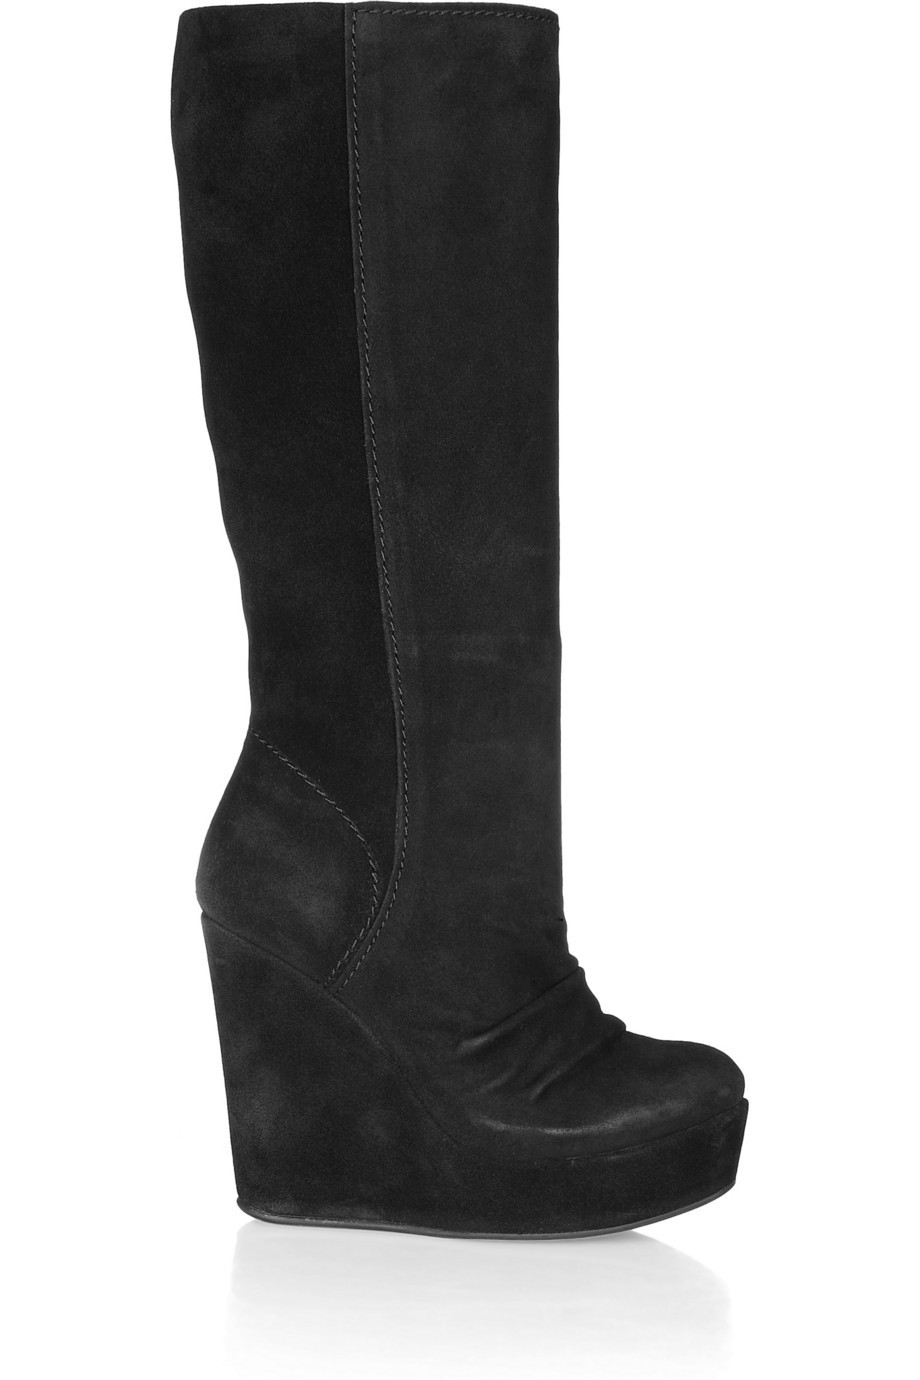 Compare Prices on Black Wedge Boots Knee High- Online Shopping/Buy ...